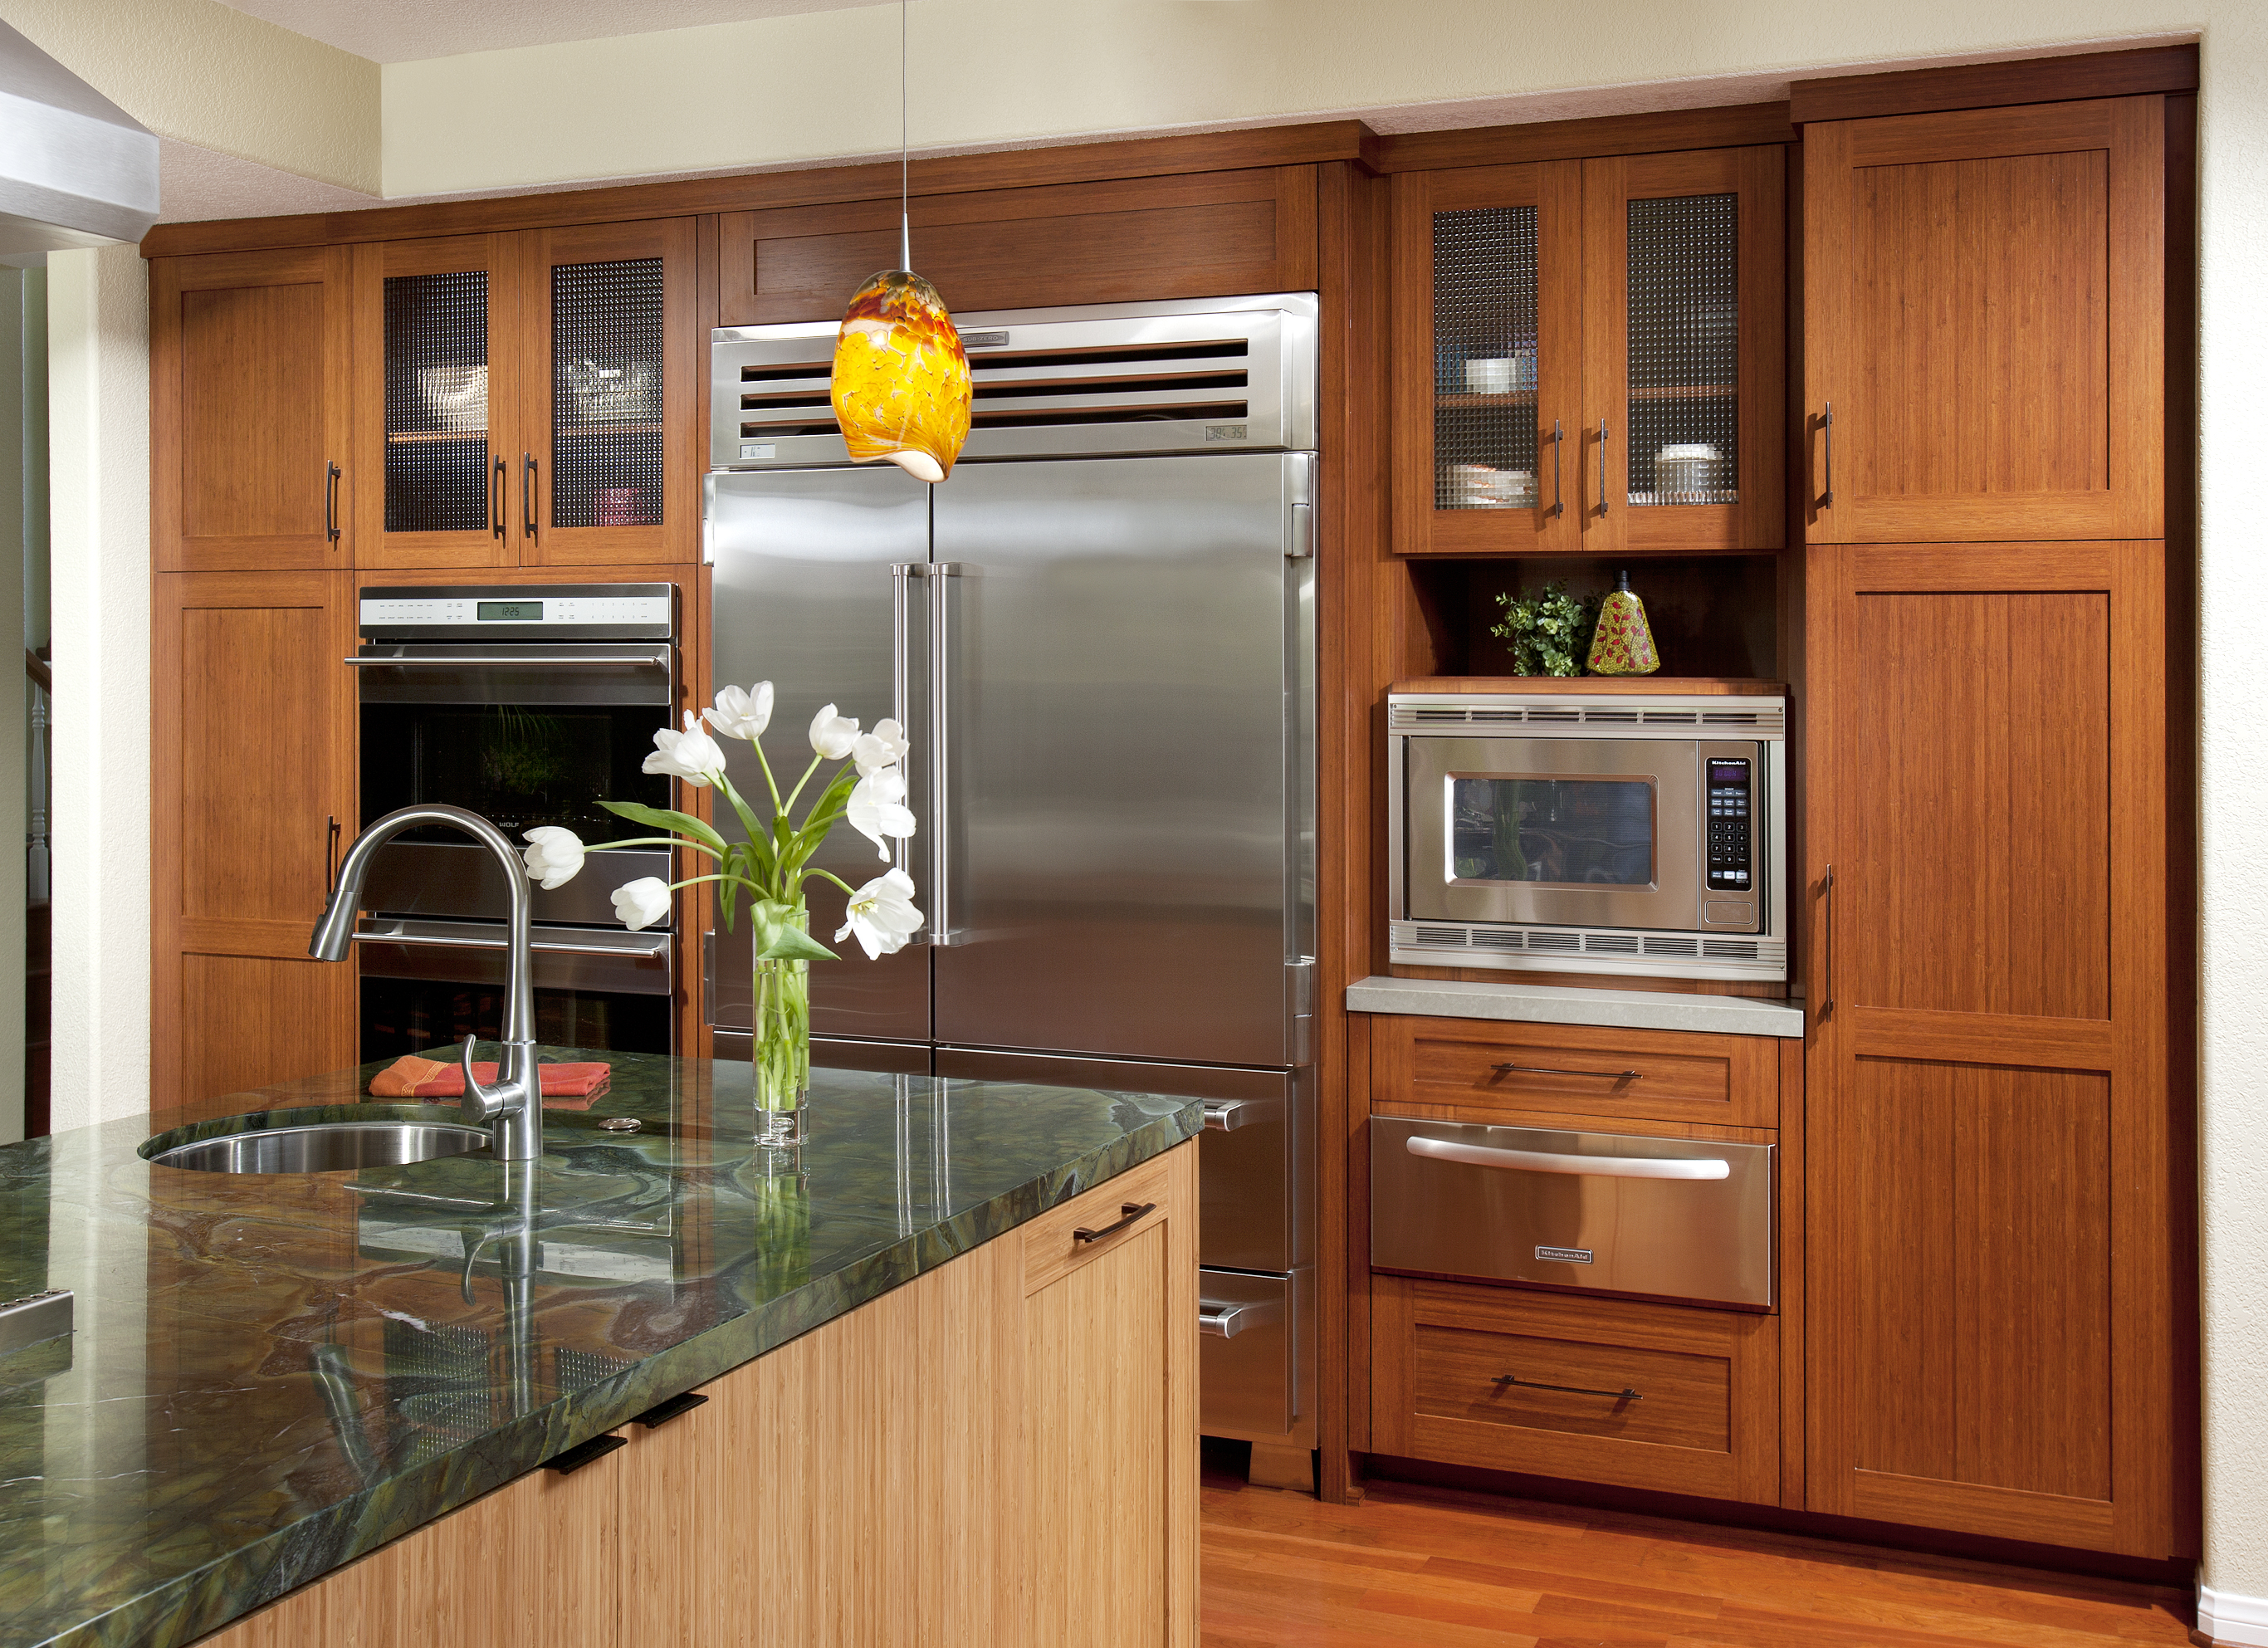 Kitchen Wall Cabinets in Bamboo